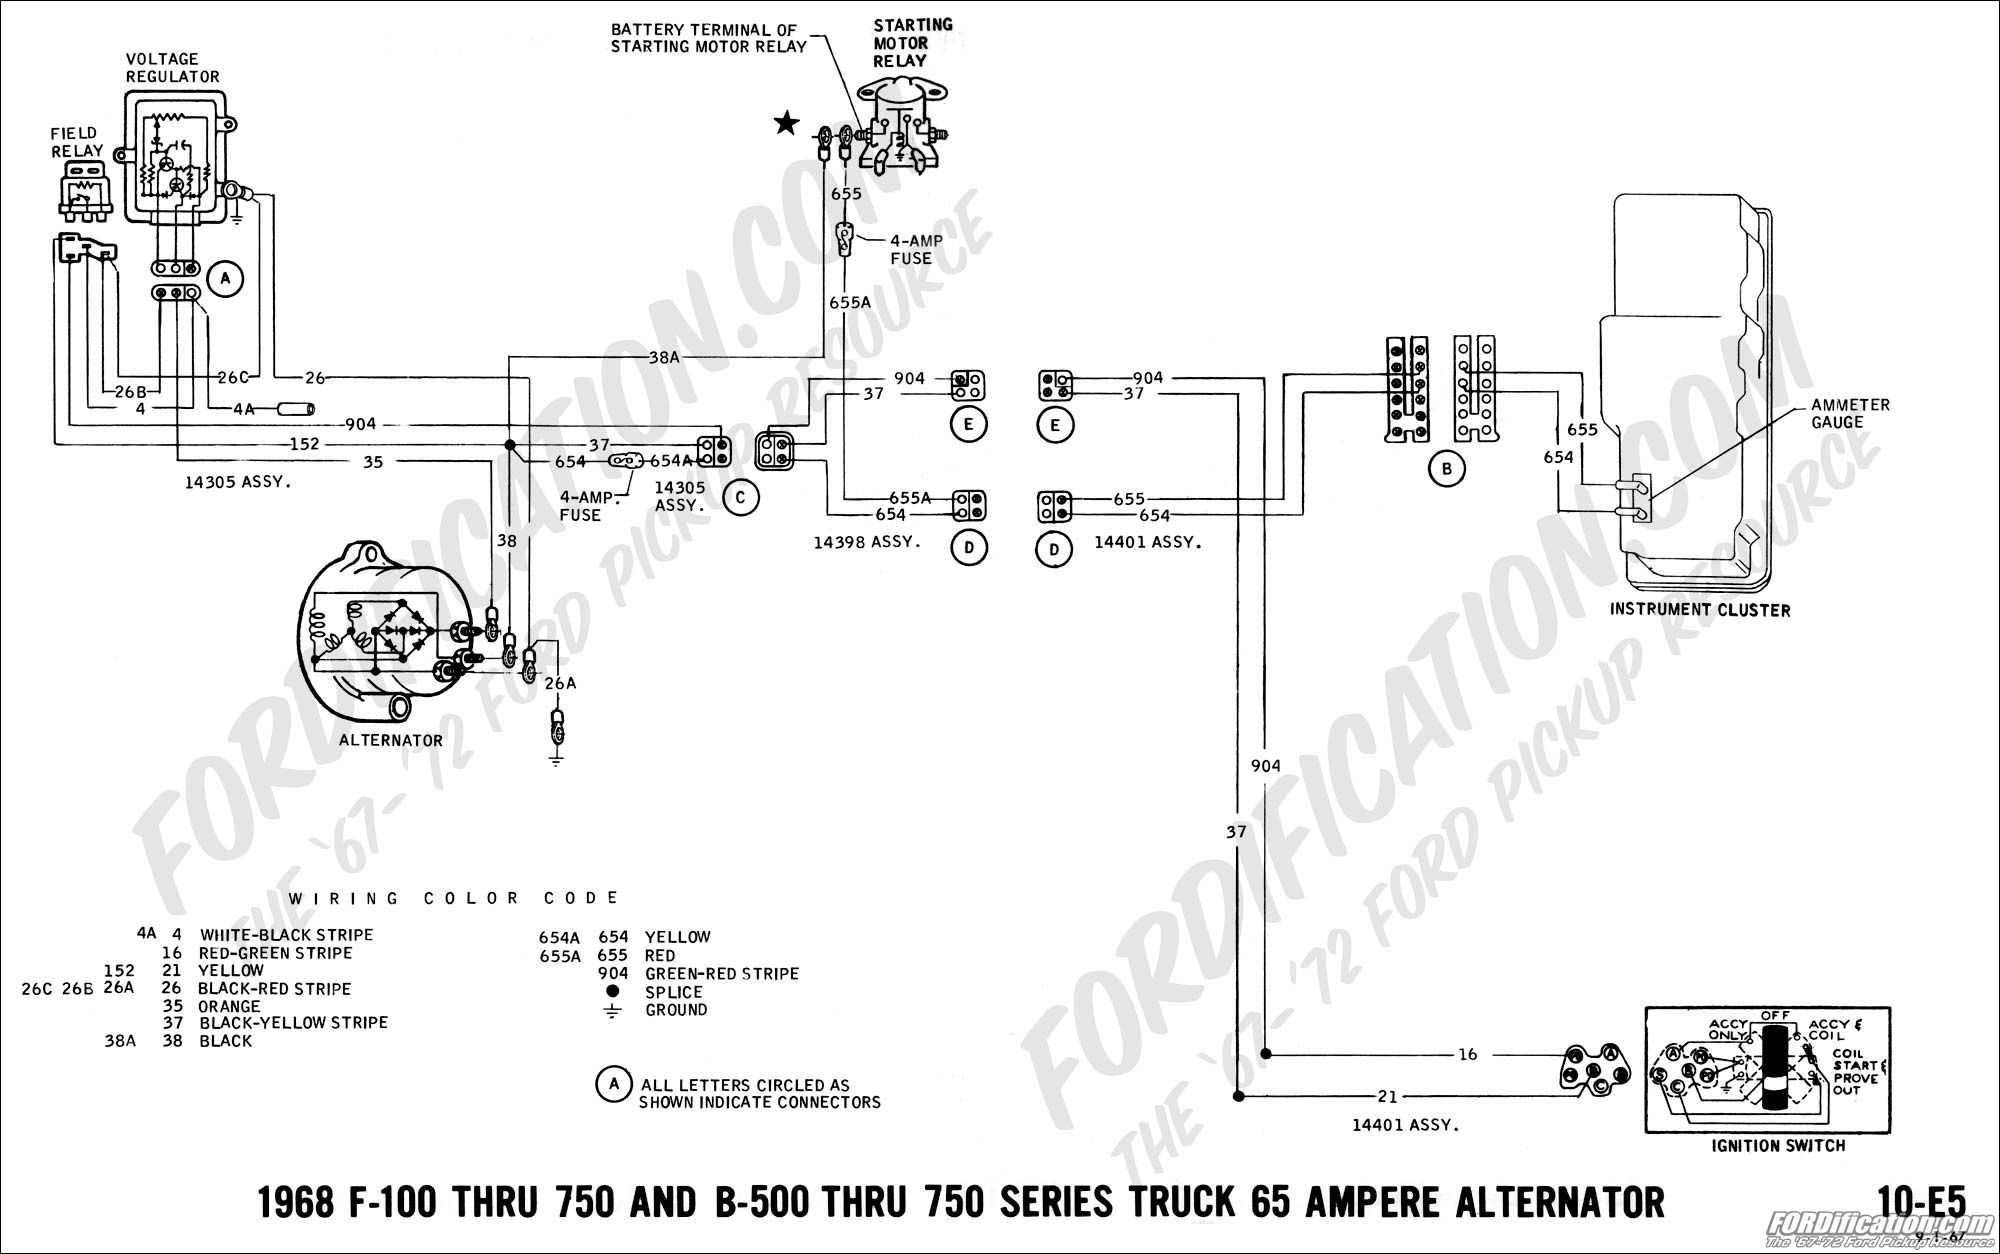 68 Ford Alternator Wiring Diagram | 76 Ford F150 | Diagram